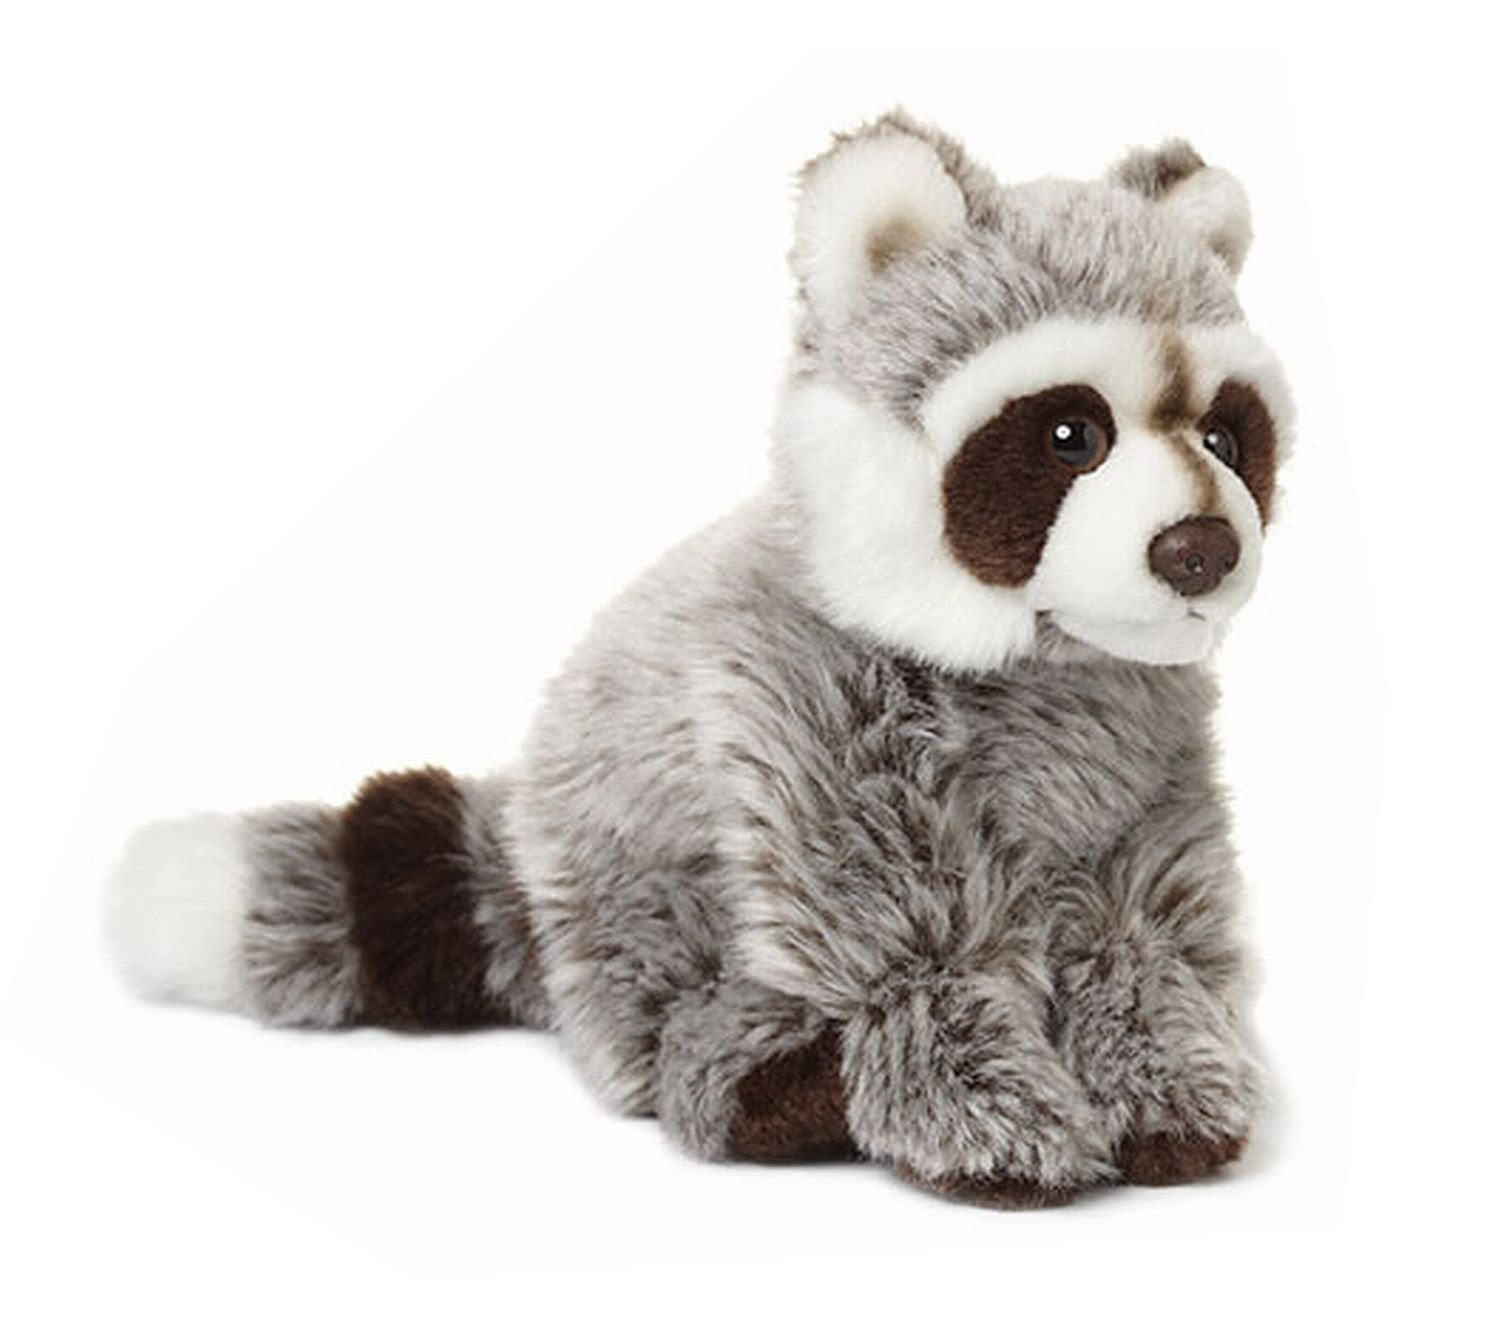 Amazon.com: Universal Trends WWF WWF00547 Raccoon Sitting 15 cm 2 Different Kinds: Toys & Games